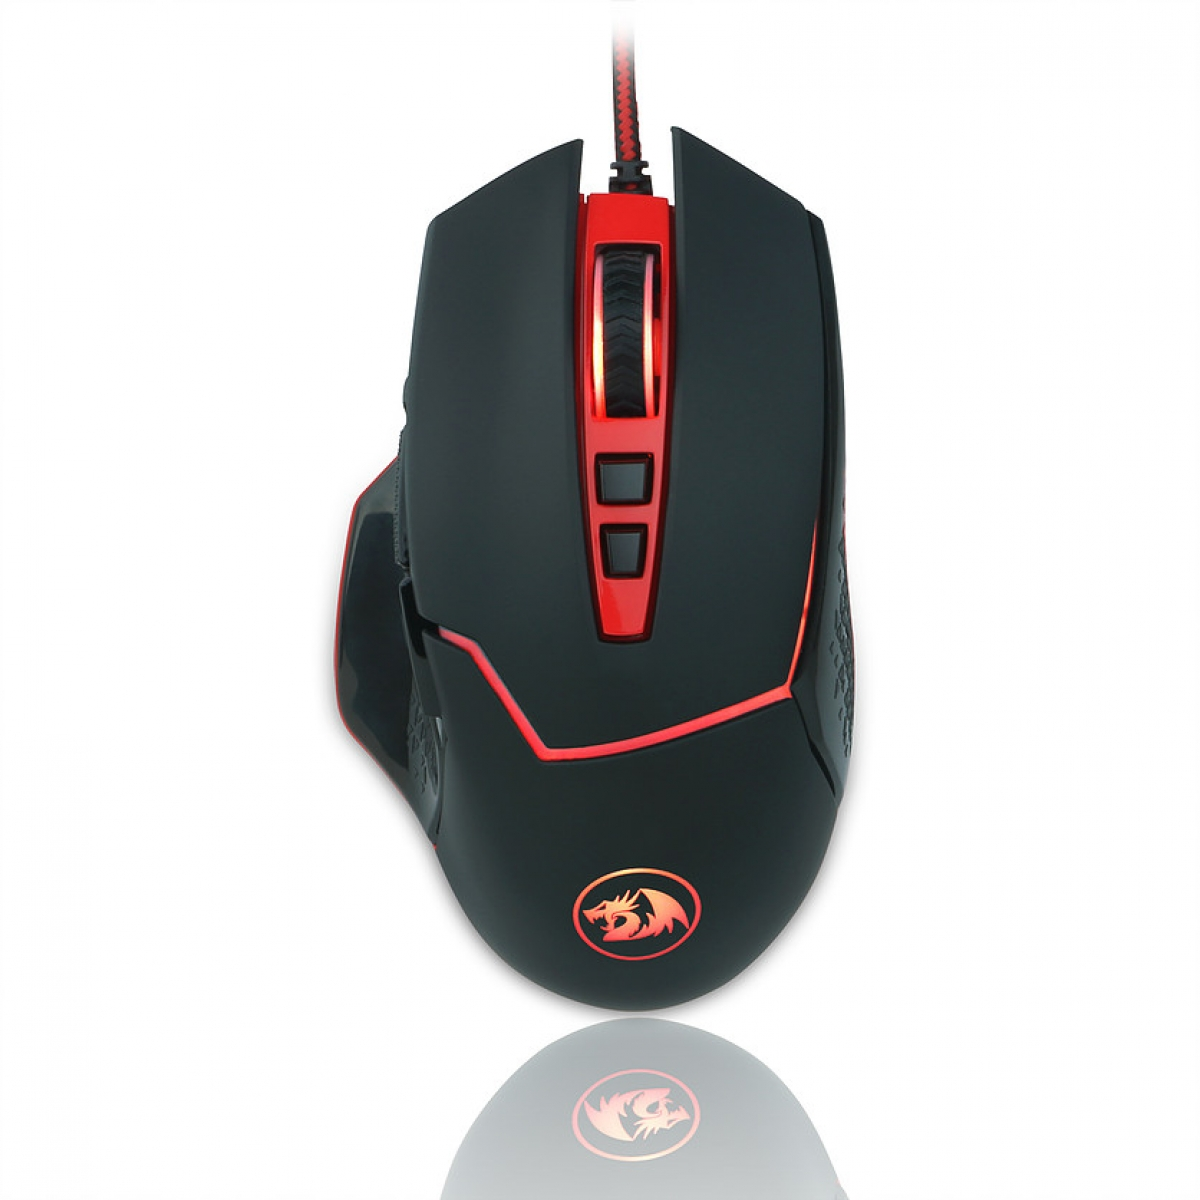 Mouse Gamer Redragon Inspirit M907 RGB, 1400 DPI, 9 Botões, Black